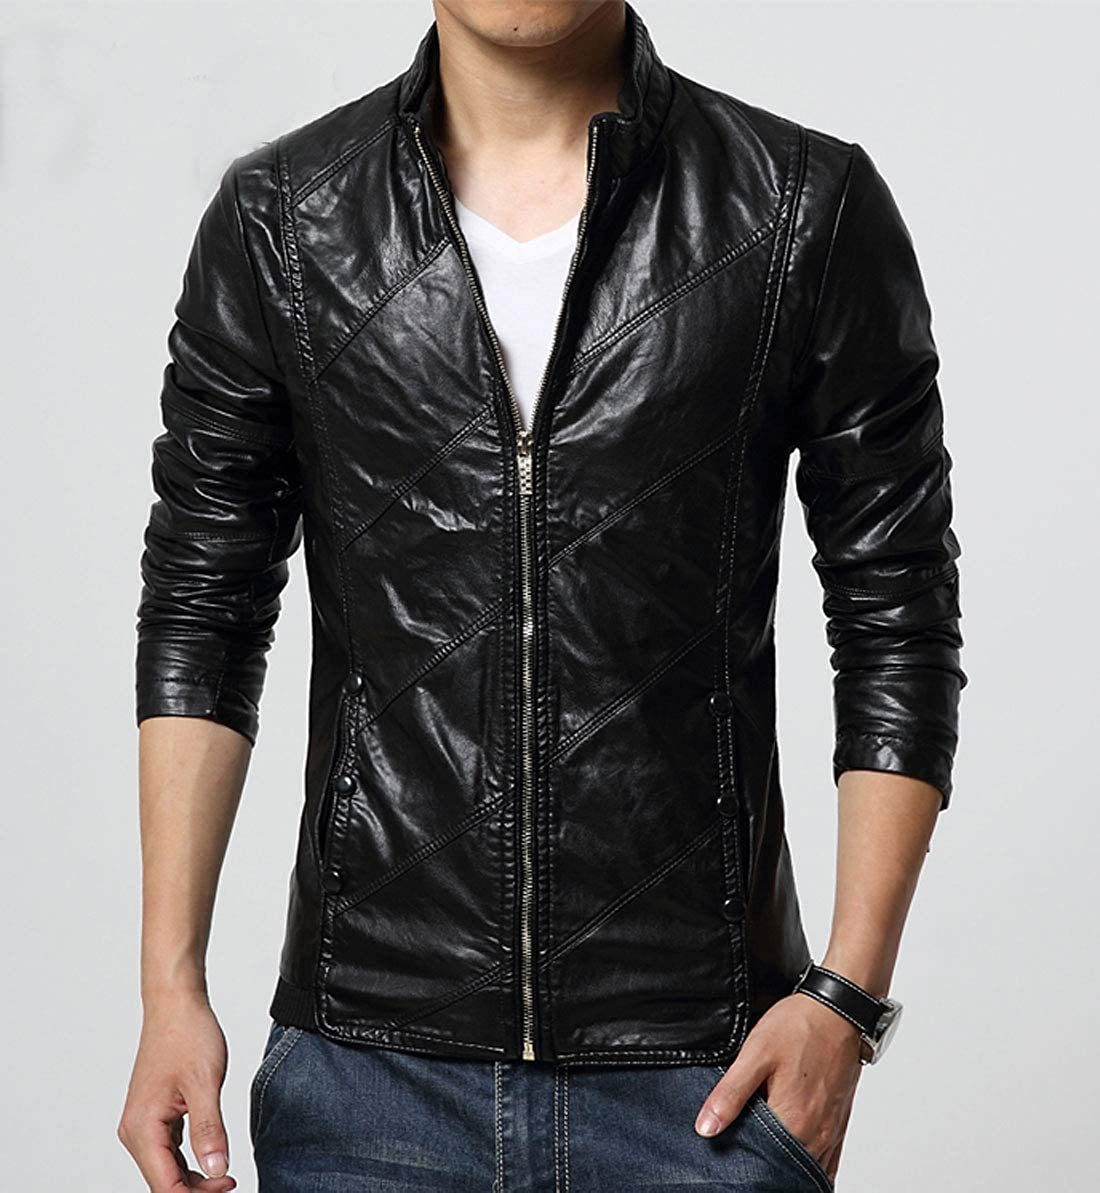 New Mens PU Leather Stand Collar Jacket Slim Fit casual Jacket Top Coat Outwear